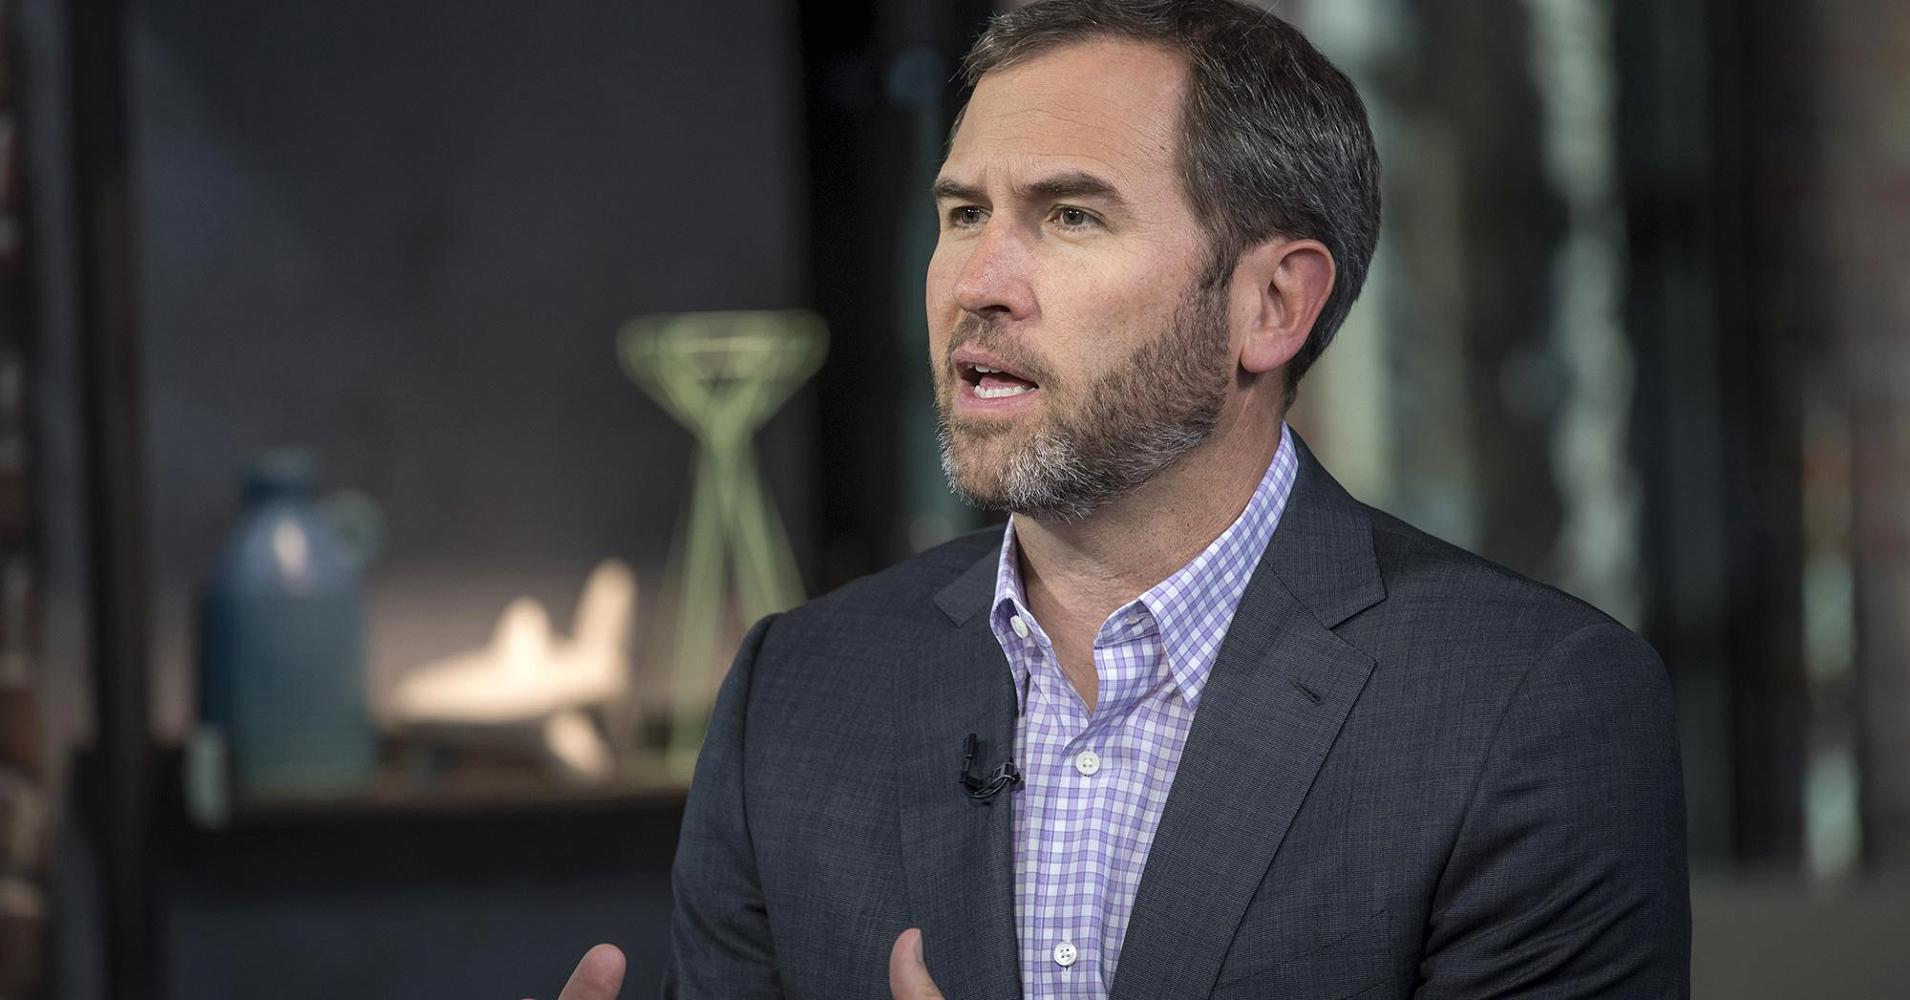 XRP Ripple Garlinghouse